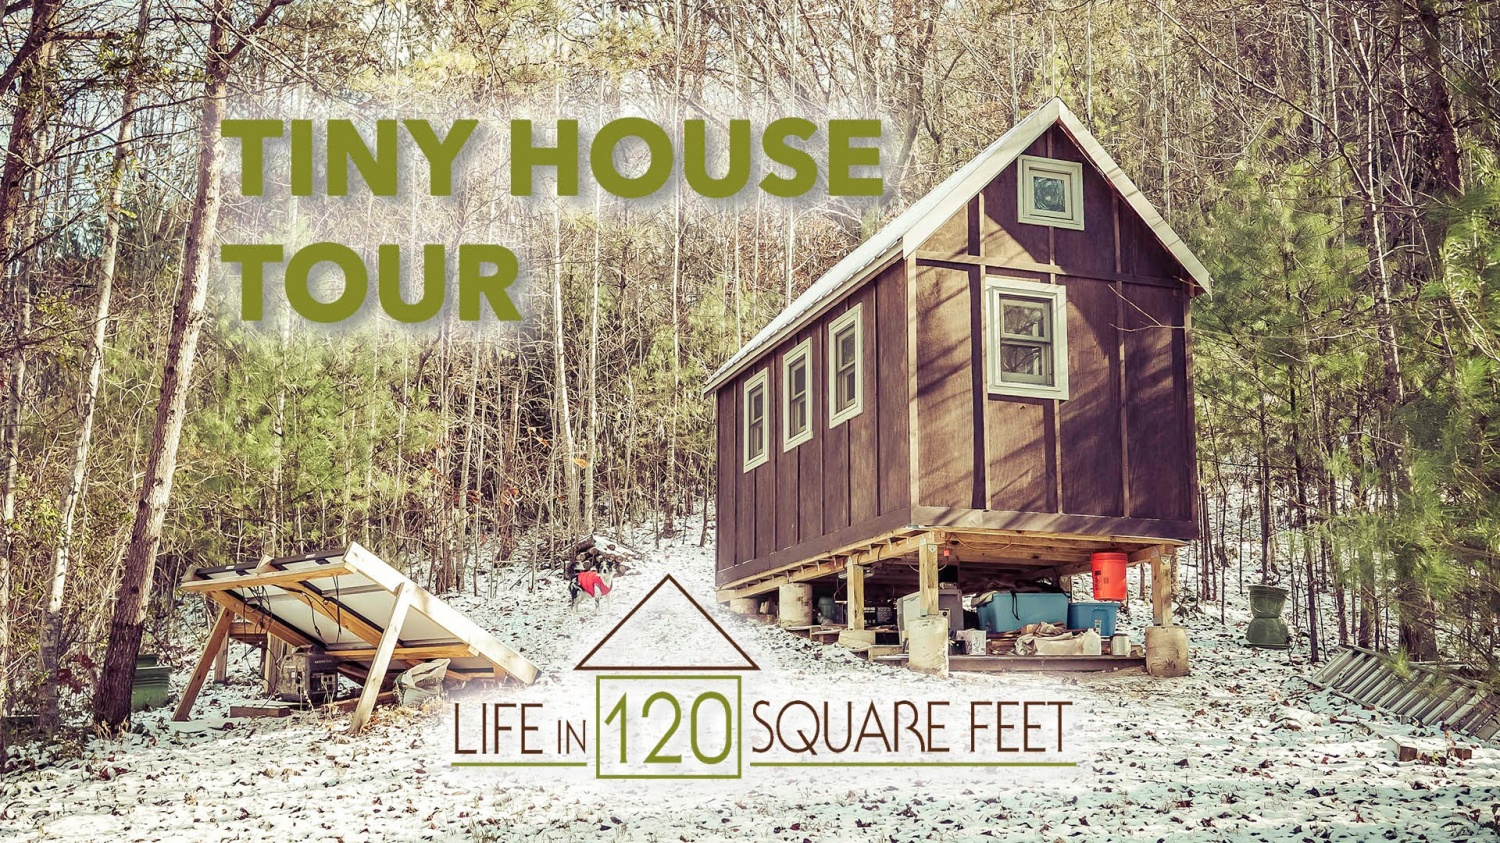 Laura Amp Matts 120 Sq Ft Tiny House In Asheville NC The Shelter Blog